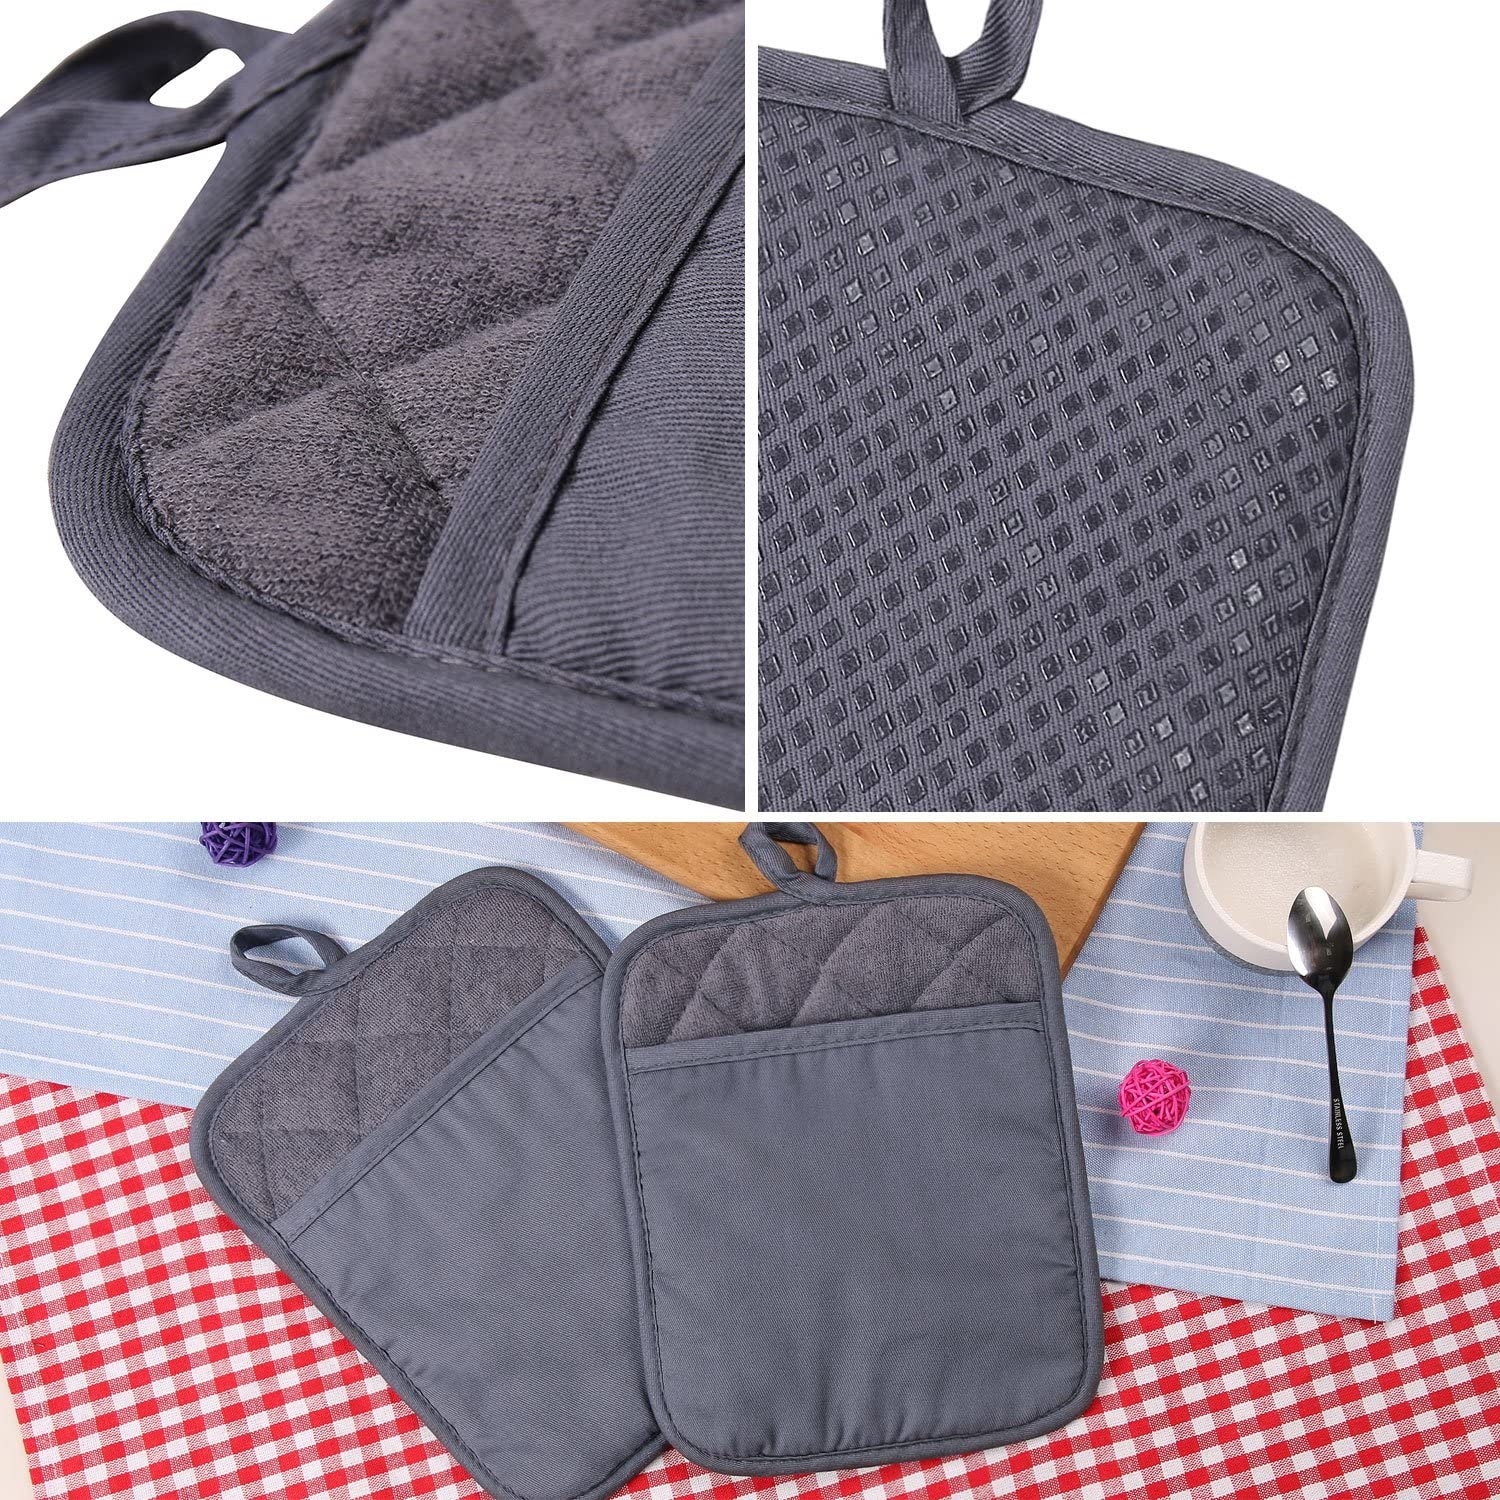 100% Cotton with Silicone Kitchen Everyday Basic Pot Holder Heat Resistant Coaster Potholder Oven Mitts with Pocket for Cooking and Baking Set of 2 Grey: Home & Kitchen